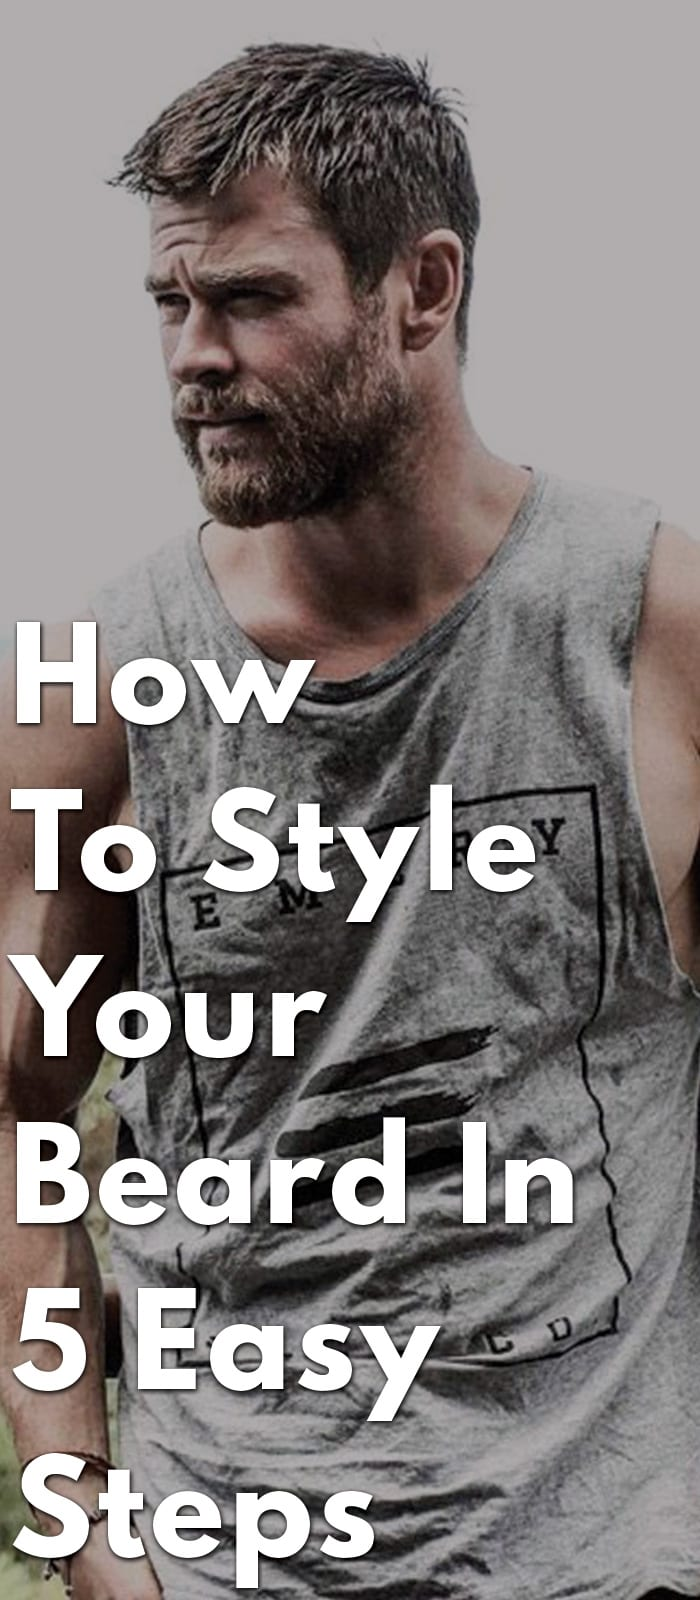 How-To-Style-Your-Beard-In-5-Easy-Steps